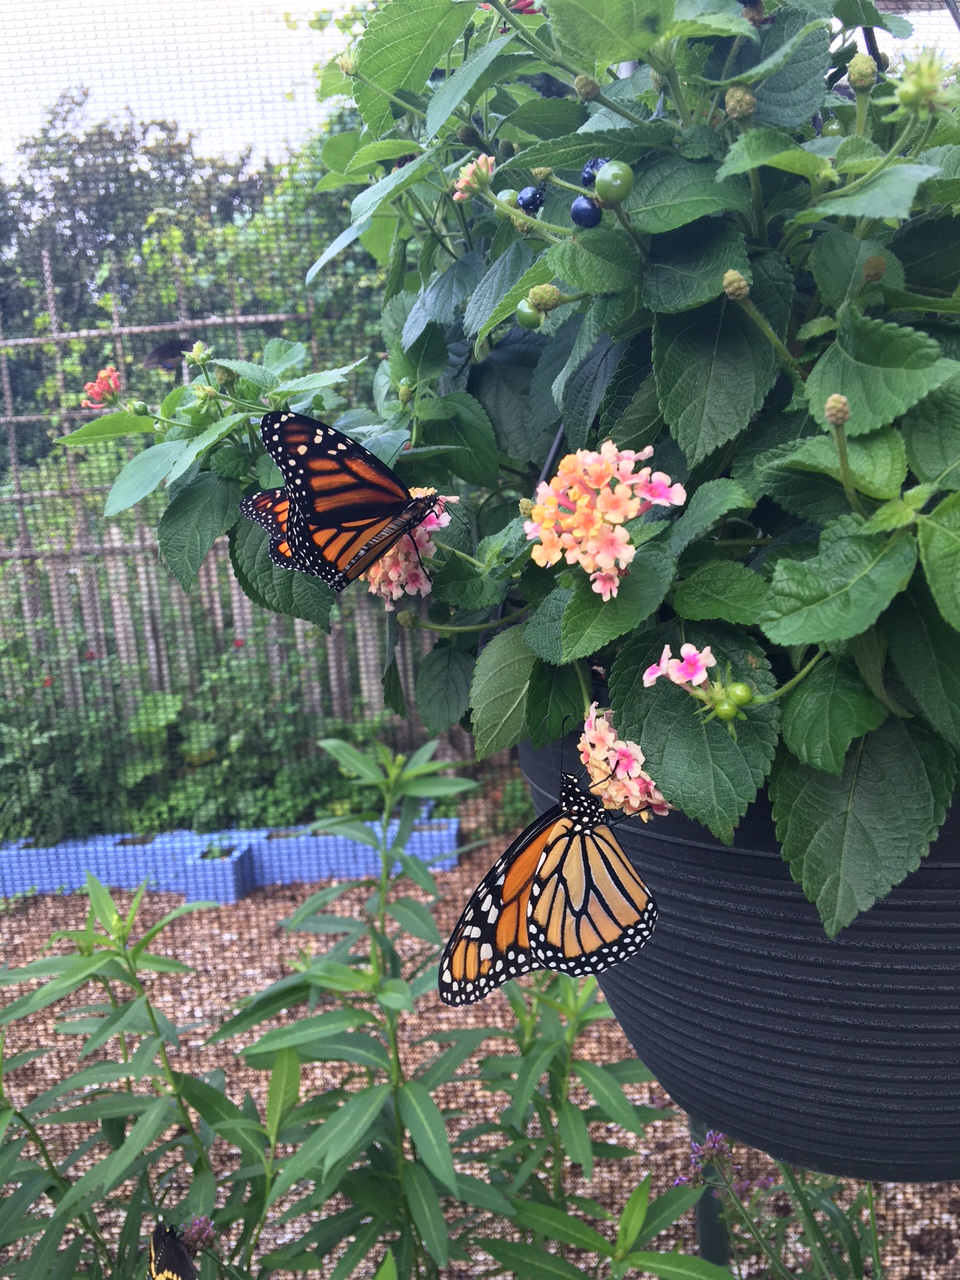 Container with monarchs 2